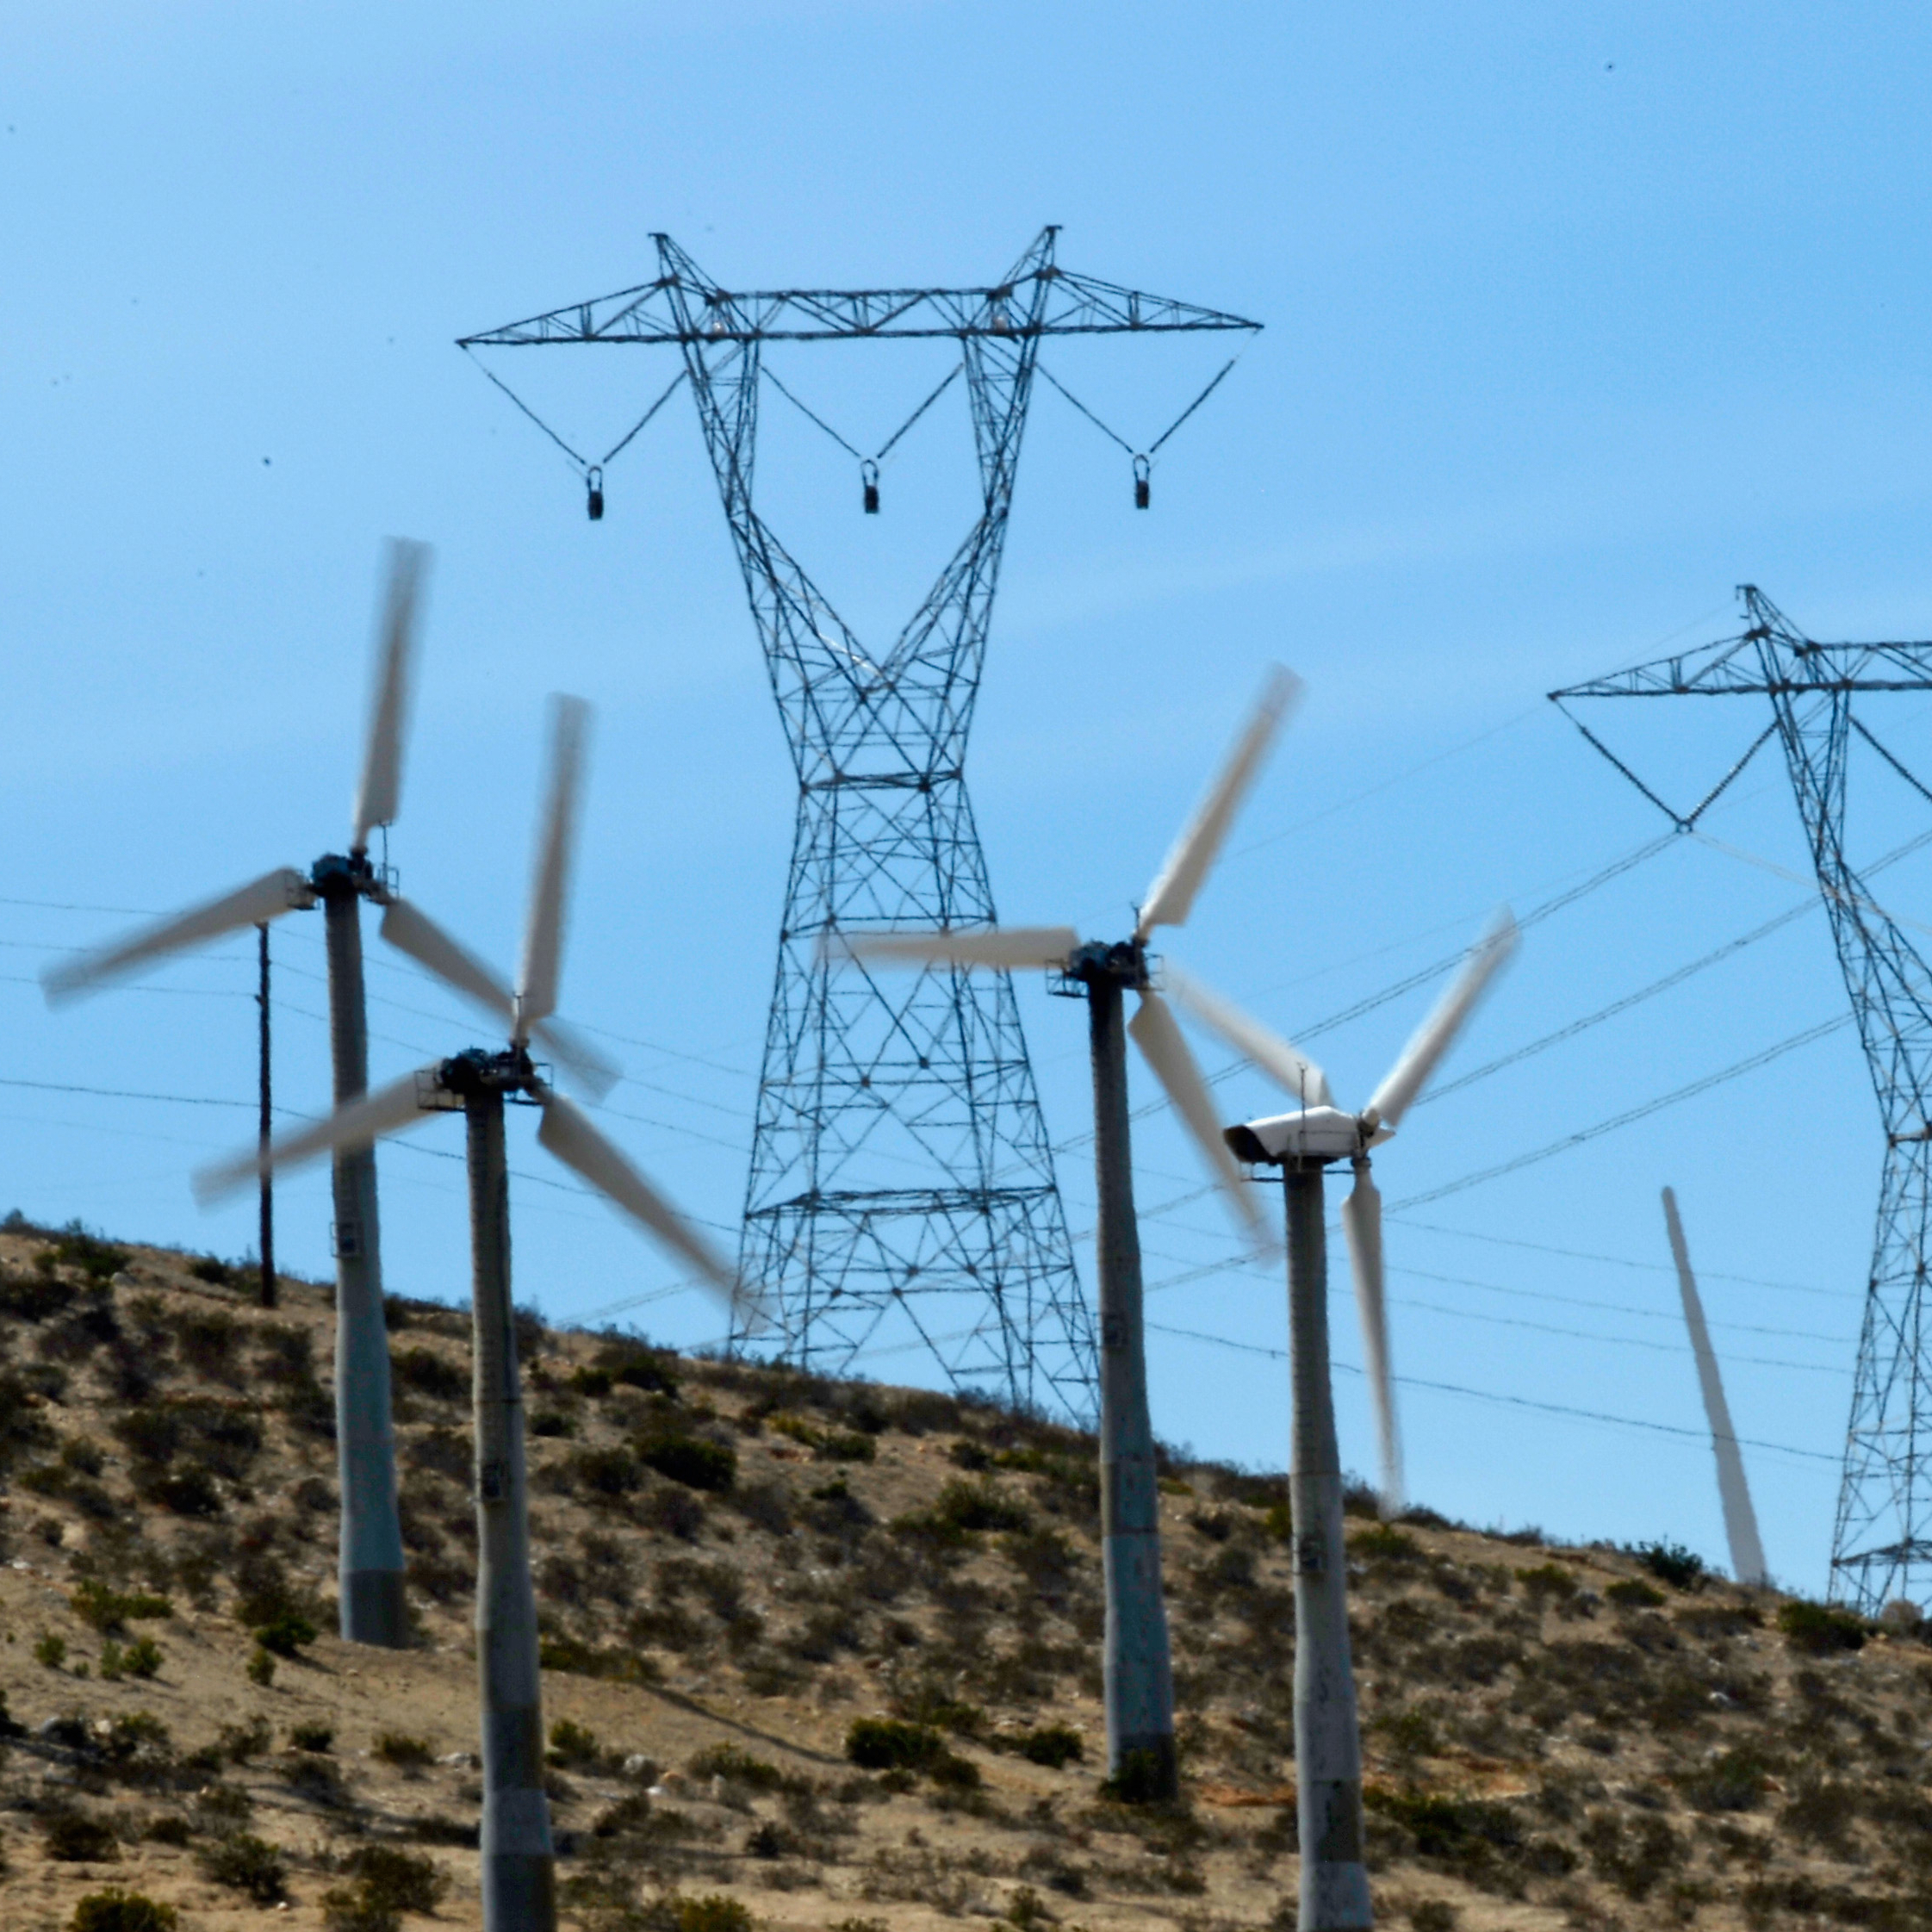 The clear skies and strong winds of Palm Springs, Calif., make turbines and solar panels popular.